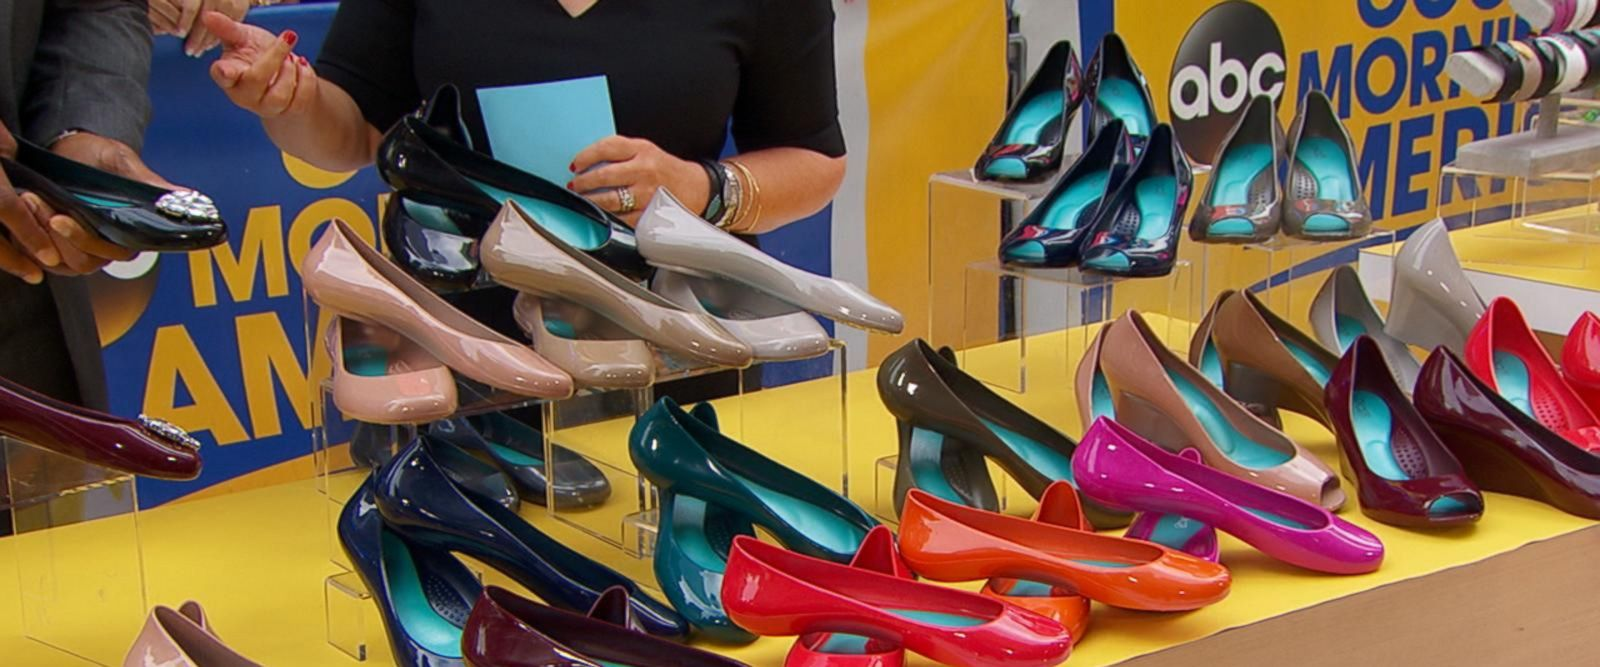 VIDEO: Deals and steals: Bargains on fall fashion must-haves